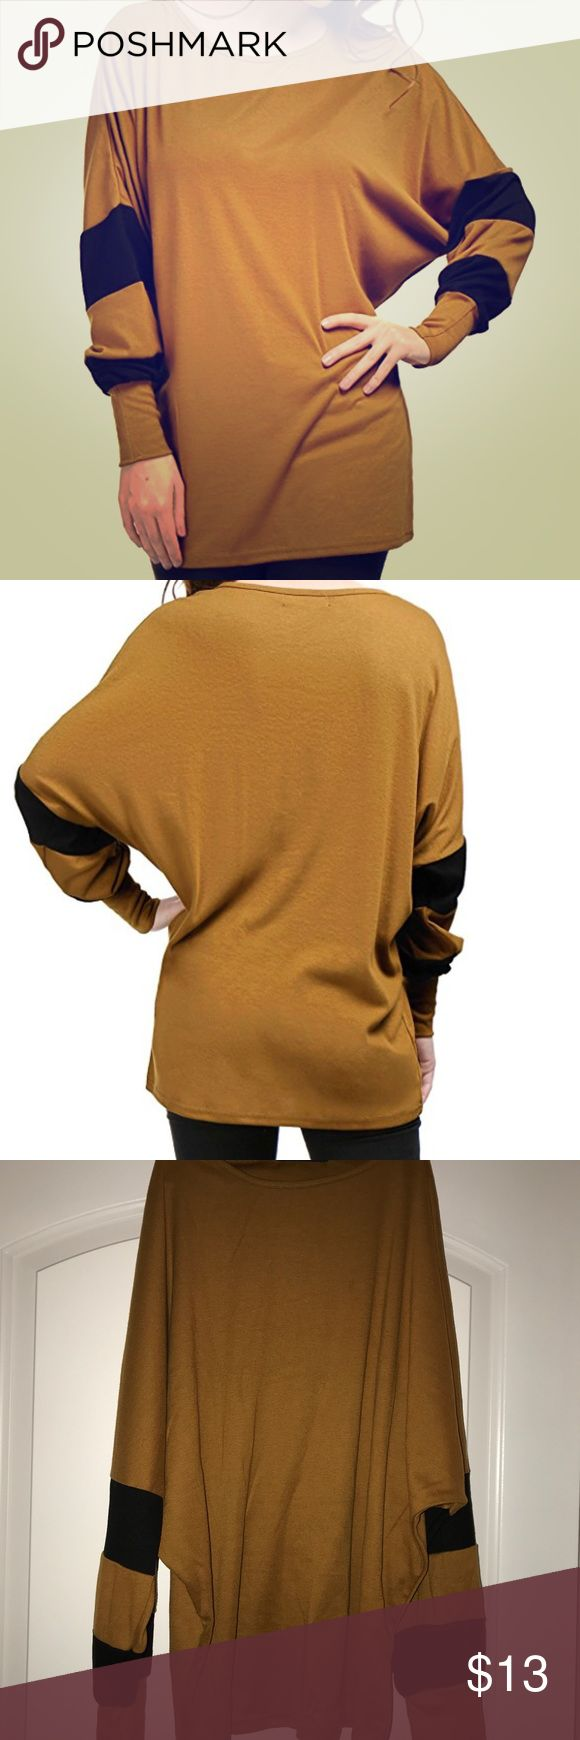 Tunic Top Oversize Fitting - Fall Shirt with Scoop Neck  Brown/Tan with Black Block patches on sleeve  Sleeve Style: Batwing Sleeve  95% Polyester, 5% Spandex Tops Tunics